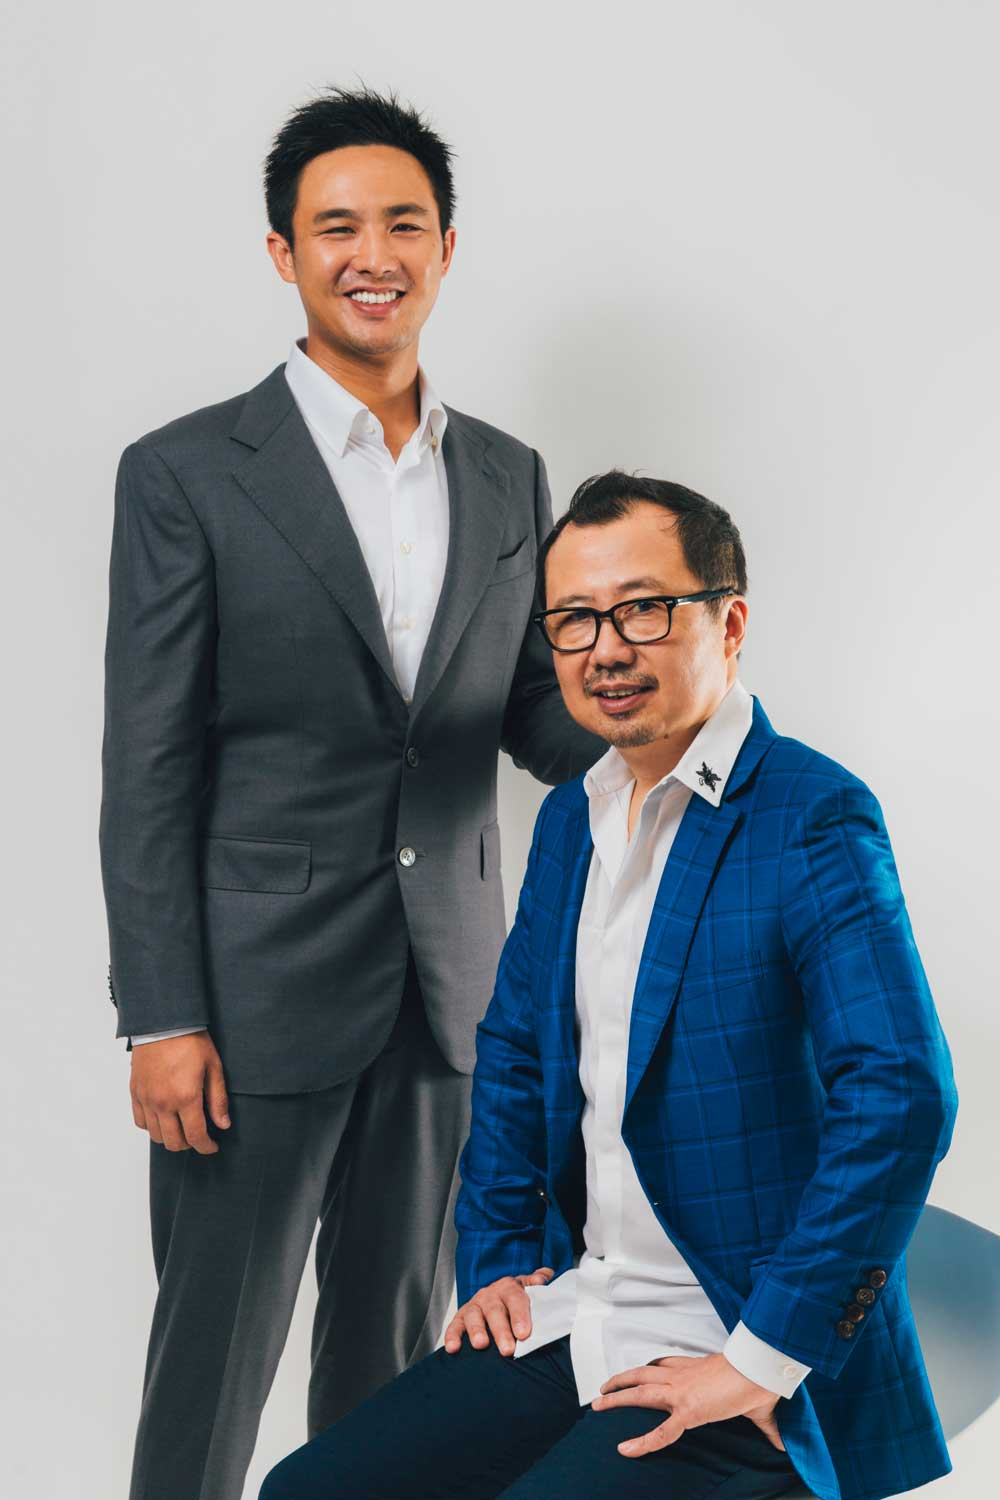 (L-R) Bryan Tan, Executive Director, Richard Mille Asia Pte Ltd with his father, Dave Tan, CEO of Richard Mille Asia Pte Ltd